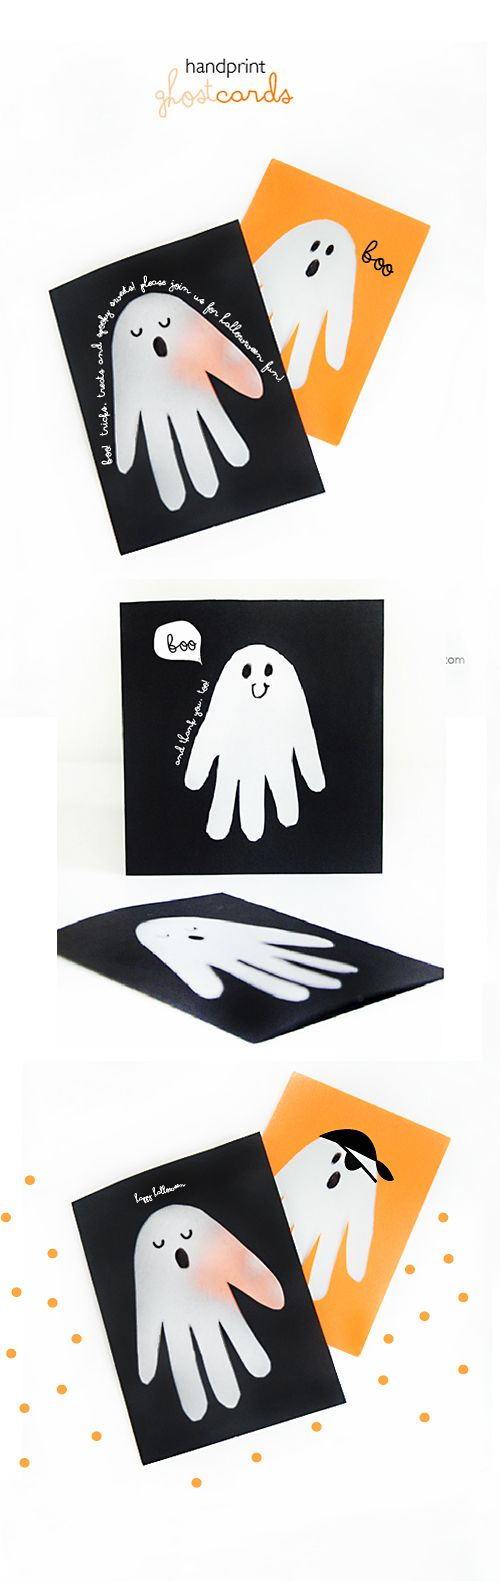 Halloween Cards | Make Transparent Handprint Ghost Cards | Halloween art ideas | elementary art | k-8 art class